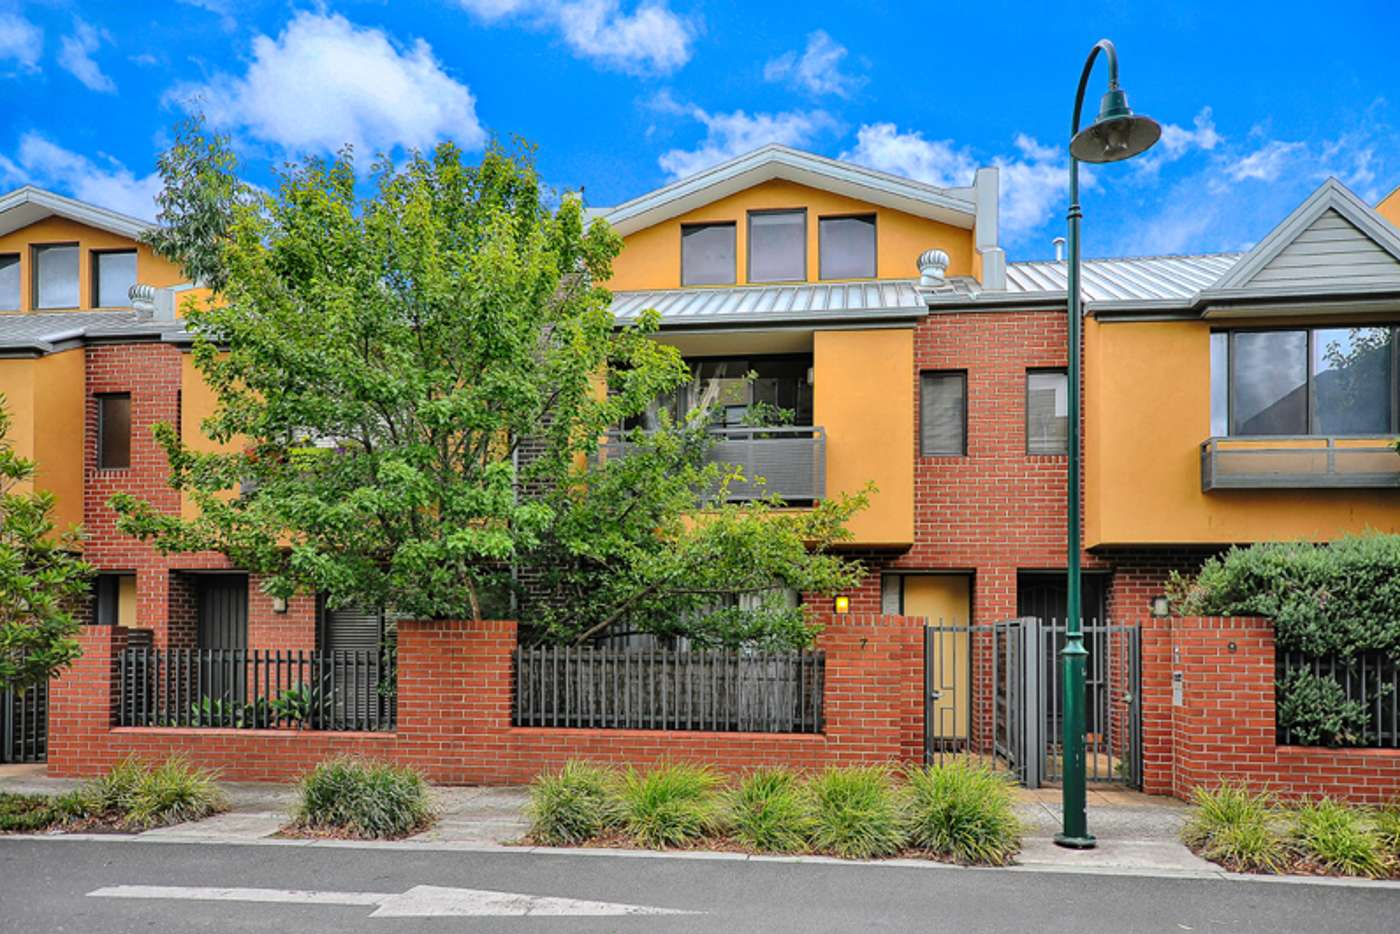 Main view of Homely townhouse listing, 7 Heath Drive, Glen Huntly VIC 3163